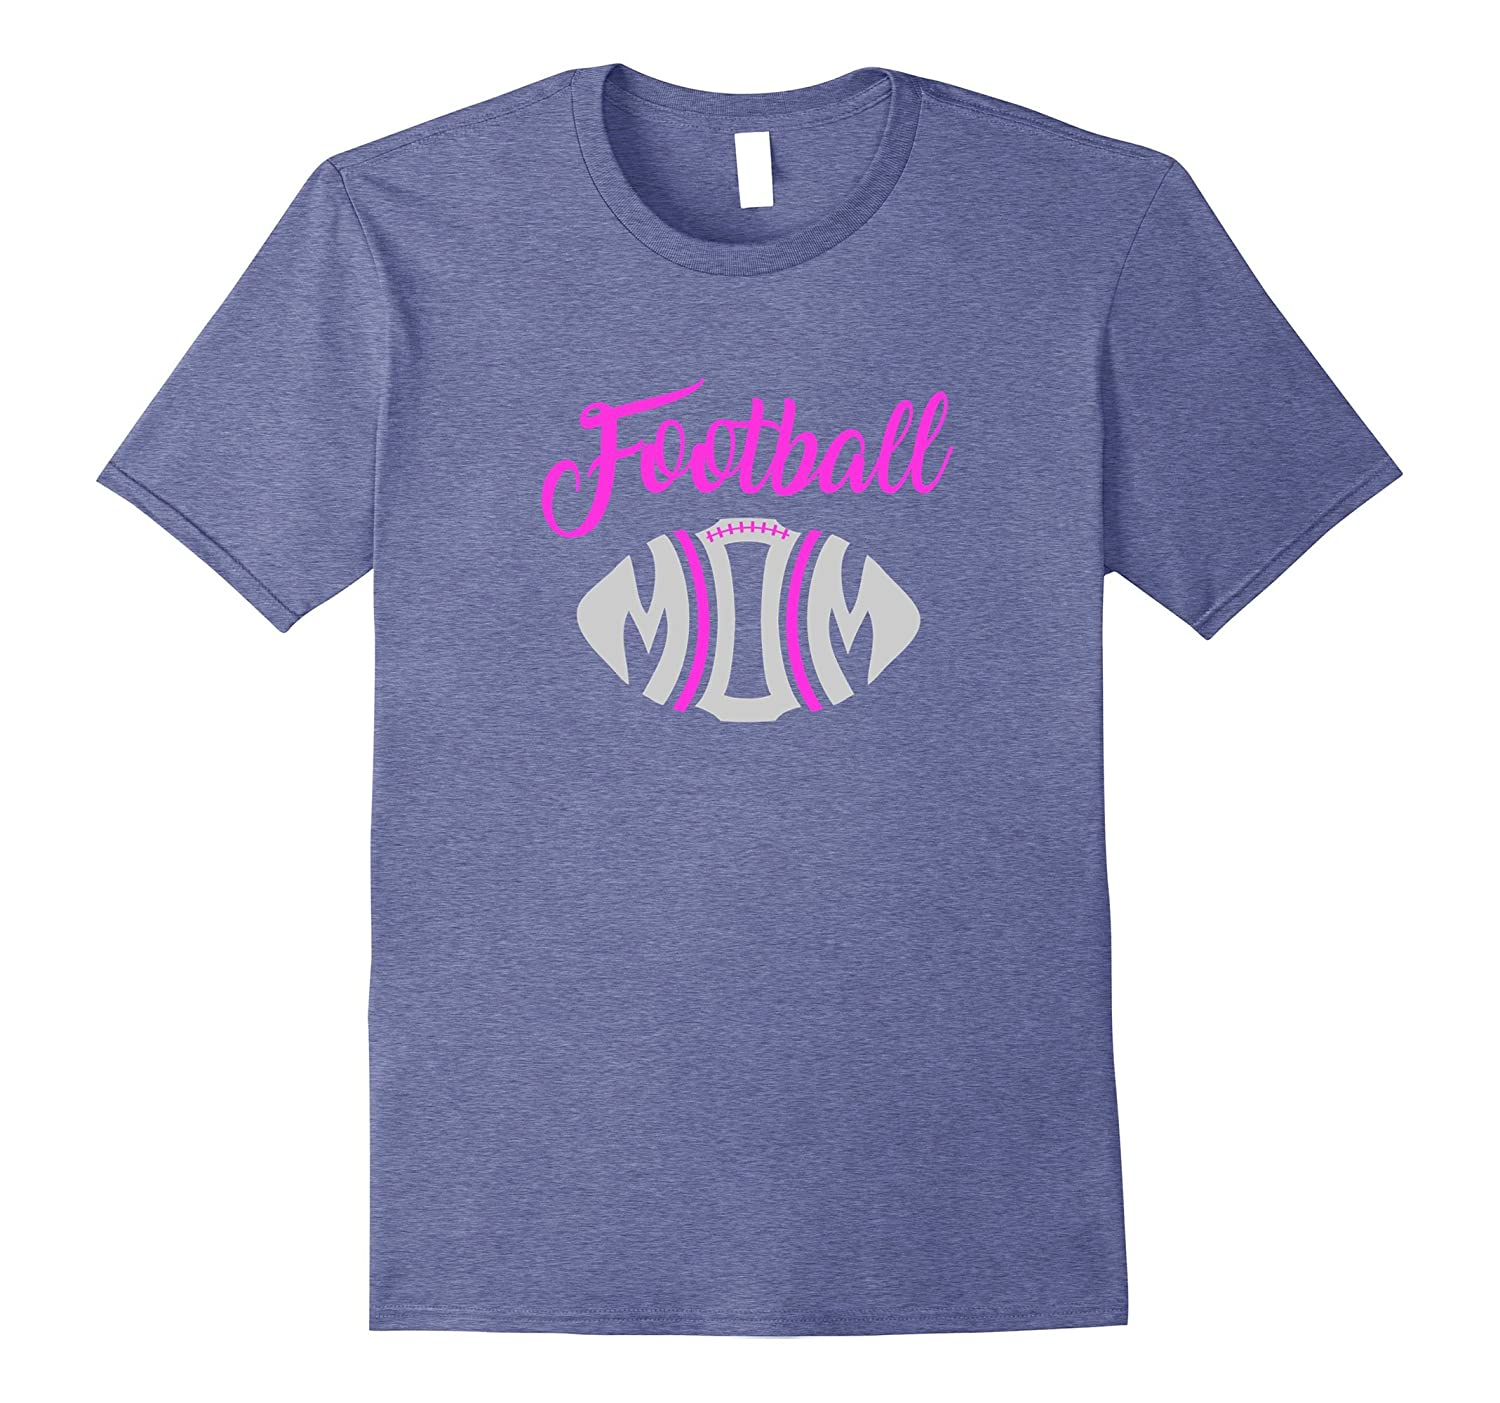 Football Mom Shirt for Pink Breast Cancer Awareness ...